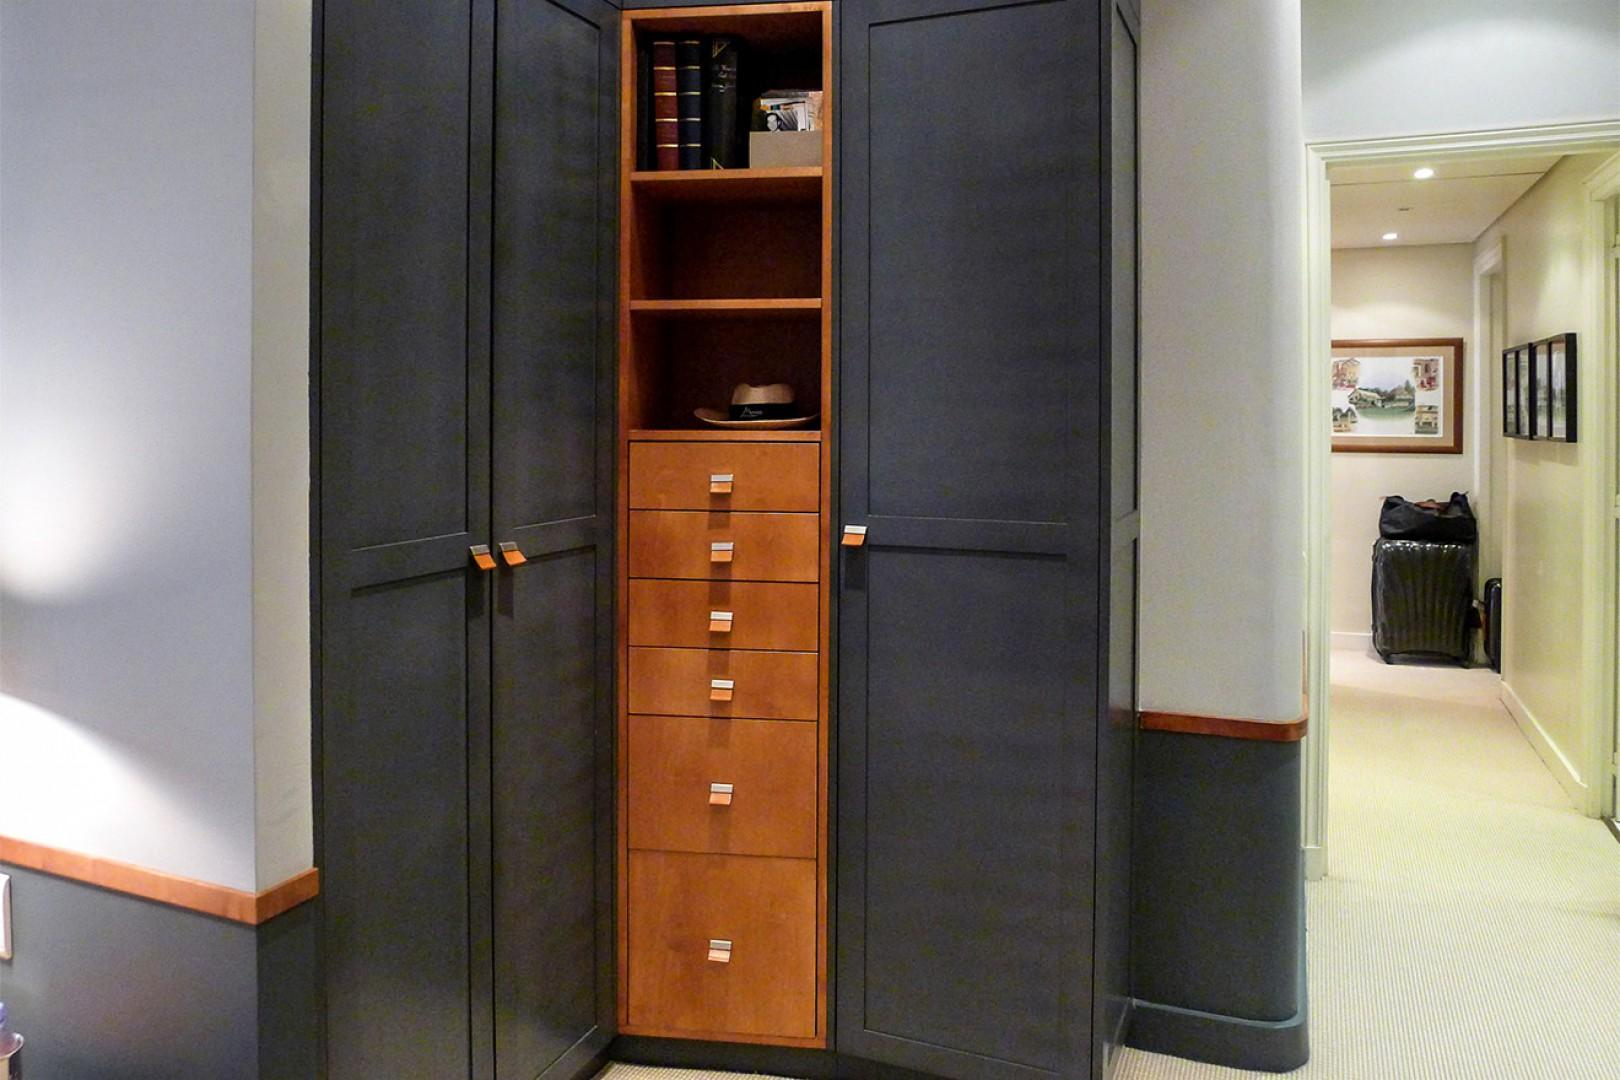 There is also a large built-in closet in bedroom 3.